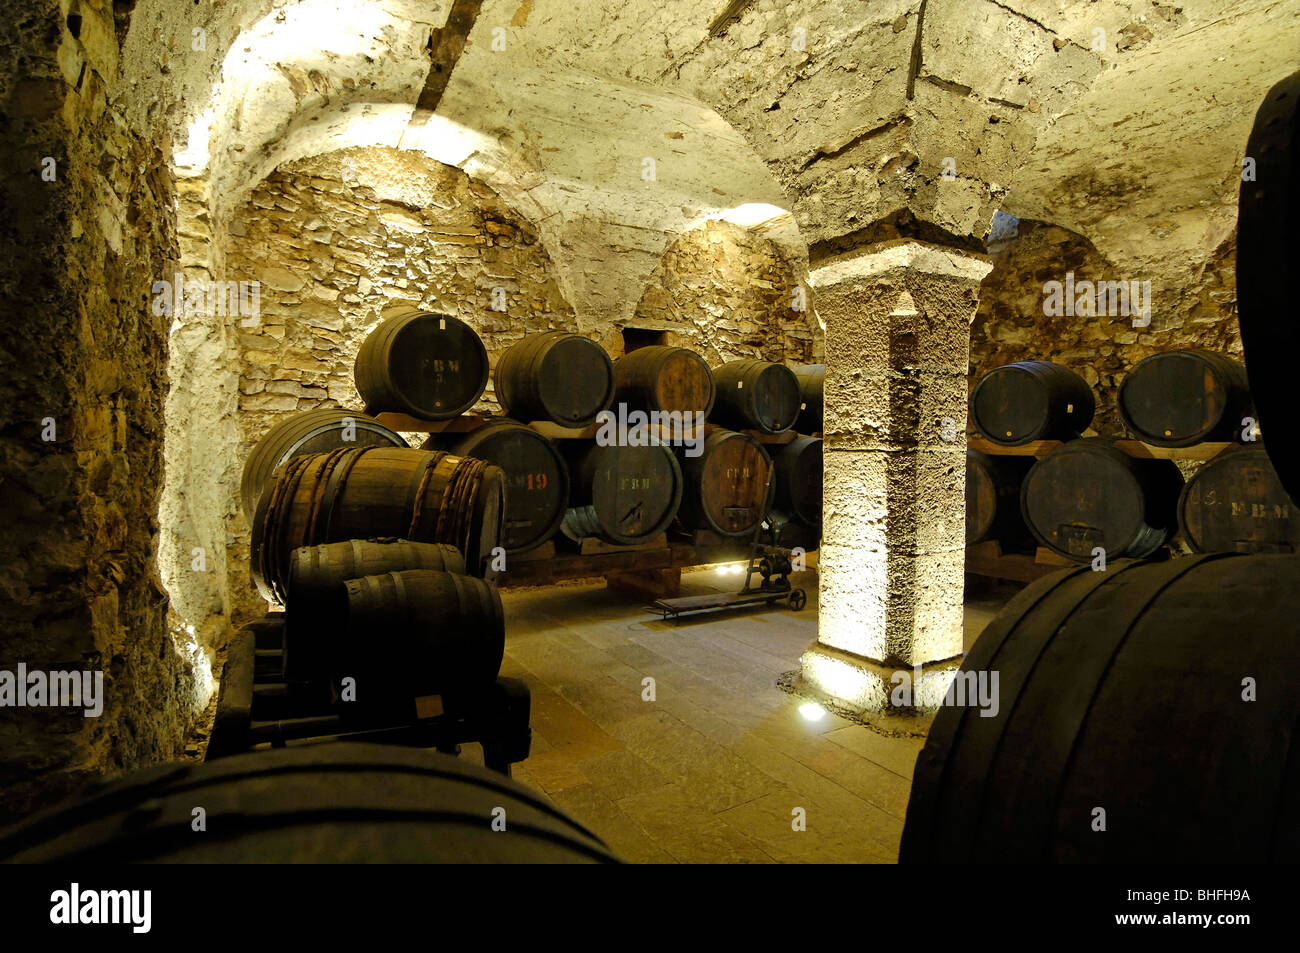 Wine celler with wine barrels, South Tyrol Wine Museum, Caldaro, Kaltern an der Weinstrasse, South Tyrol, Italy - Stock Image